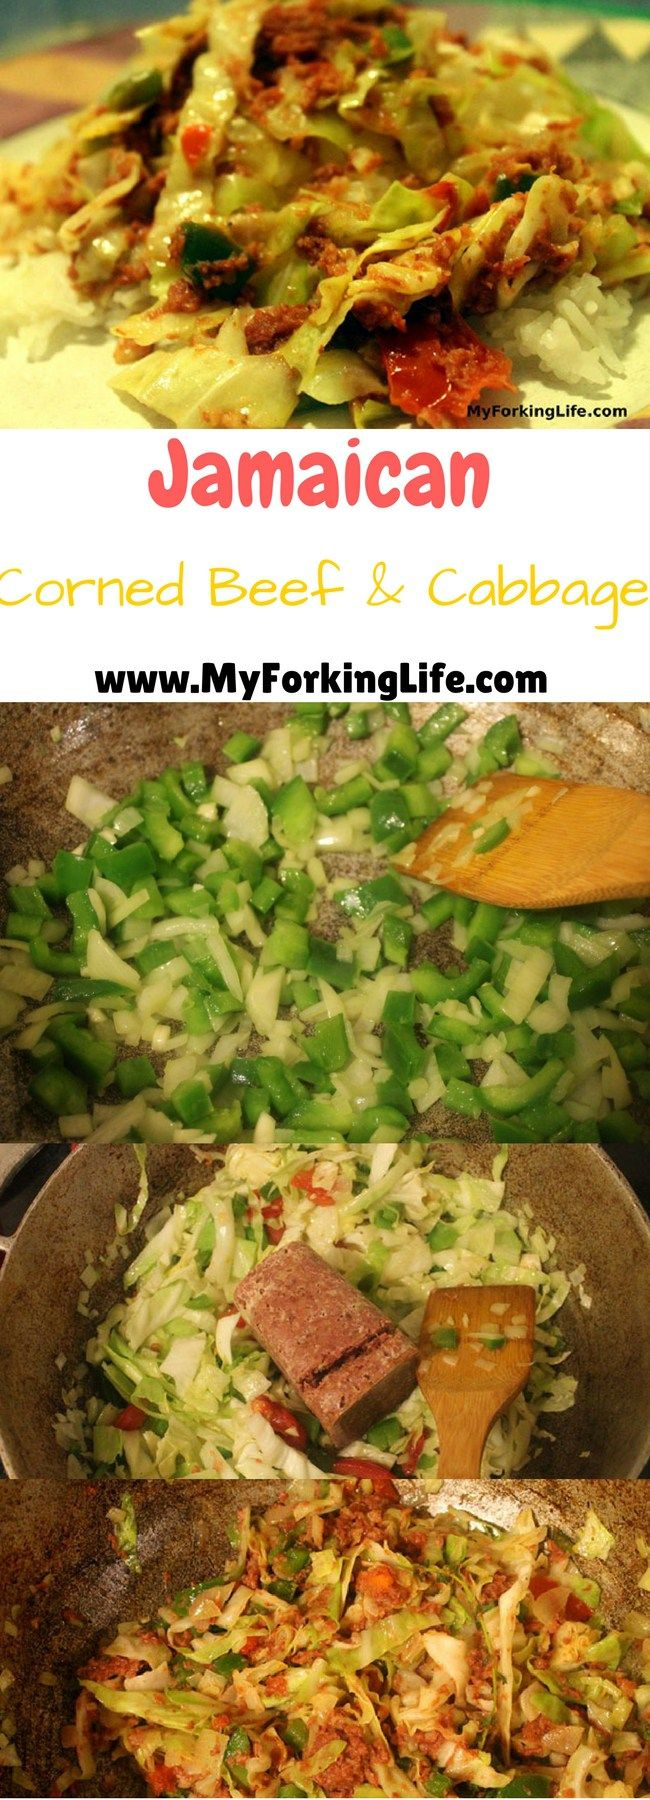 Jamaican Corned Beef & Cabbage is a traditional island dinner dish that can…